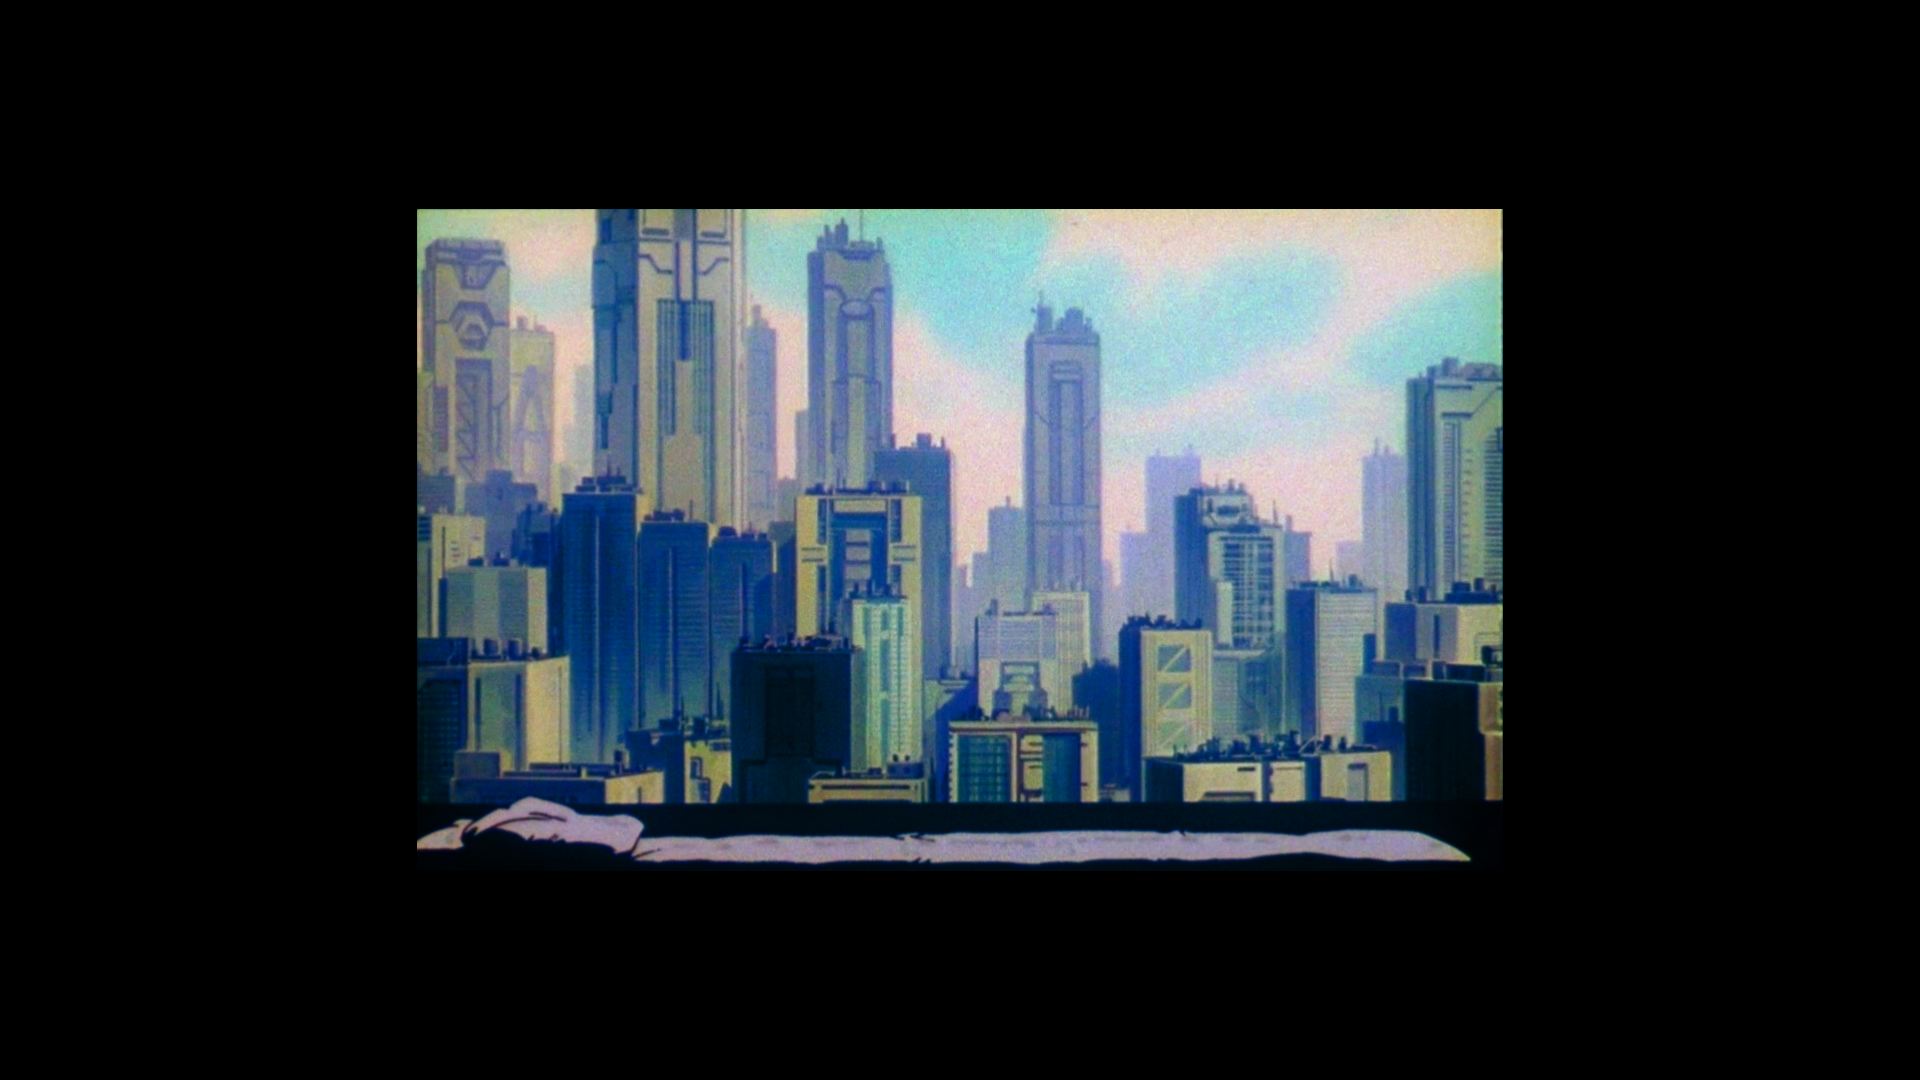 Ghost In The Shell Ghost In The Shell Skyline 1287259 Hd Wallpaper Backgrounds Download